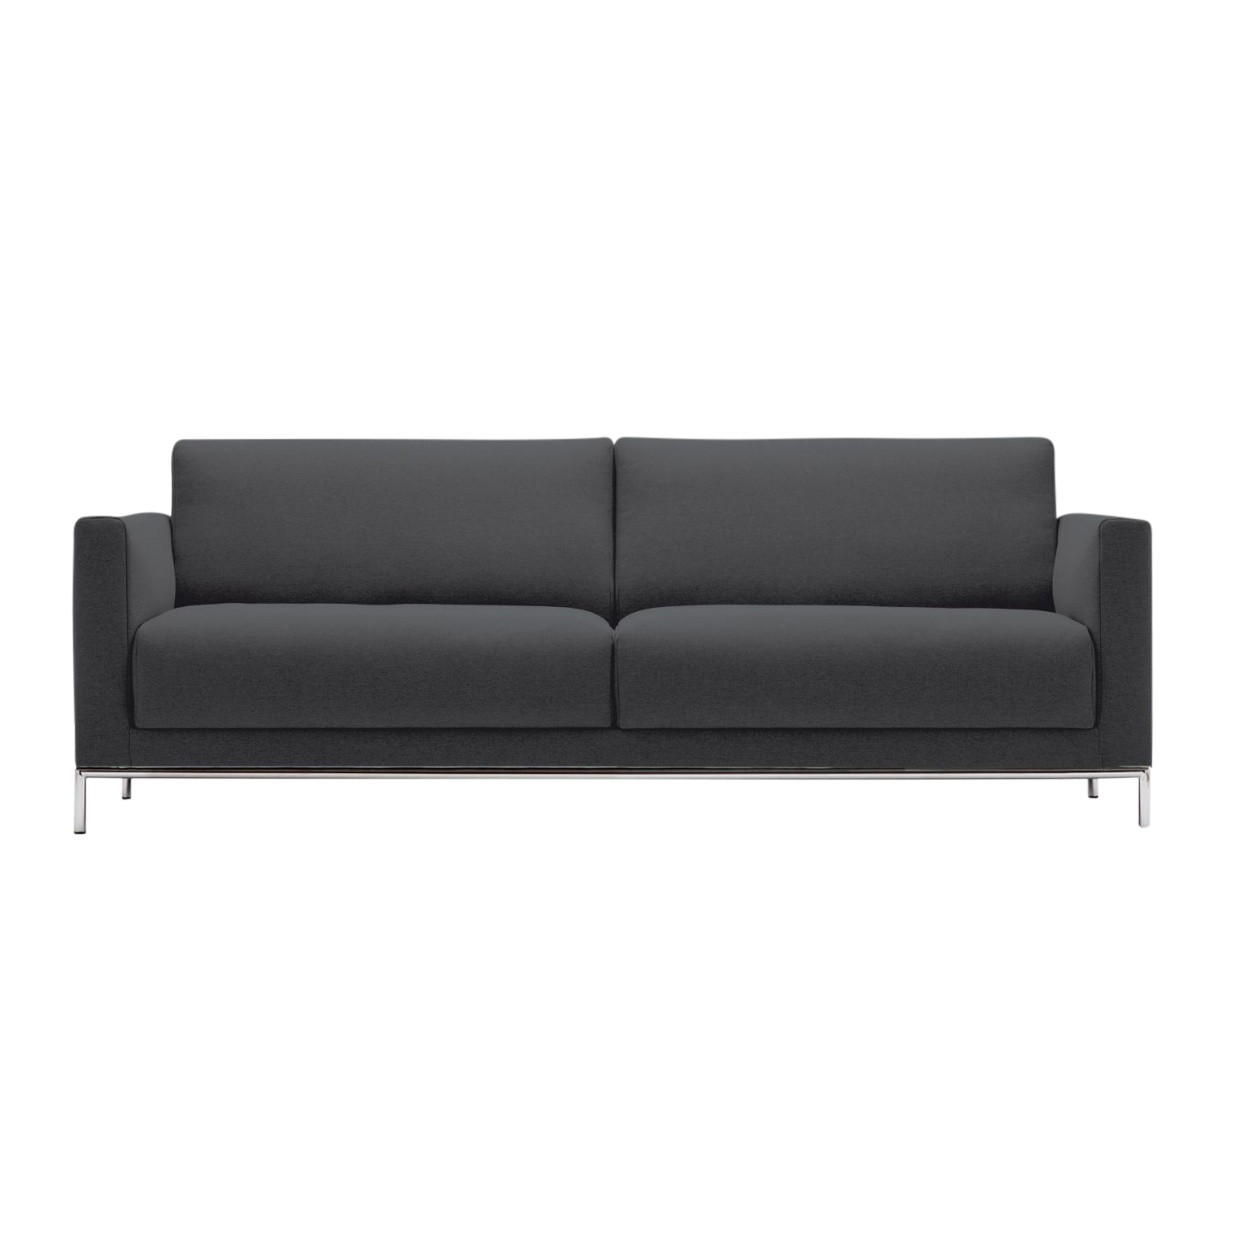 Freistil 141 3 Seater Sofa Frame Chrome